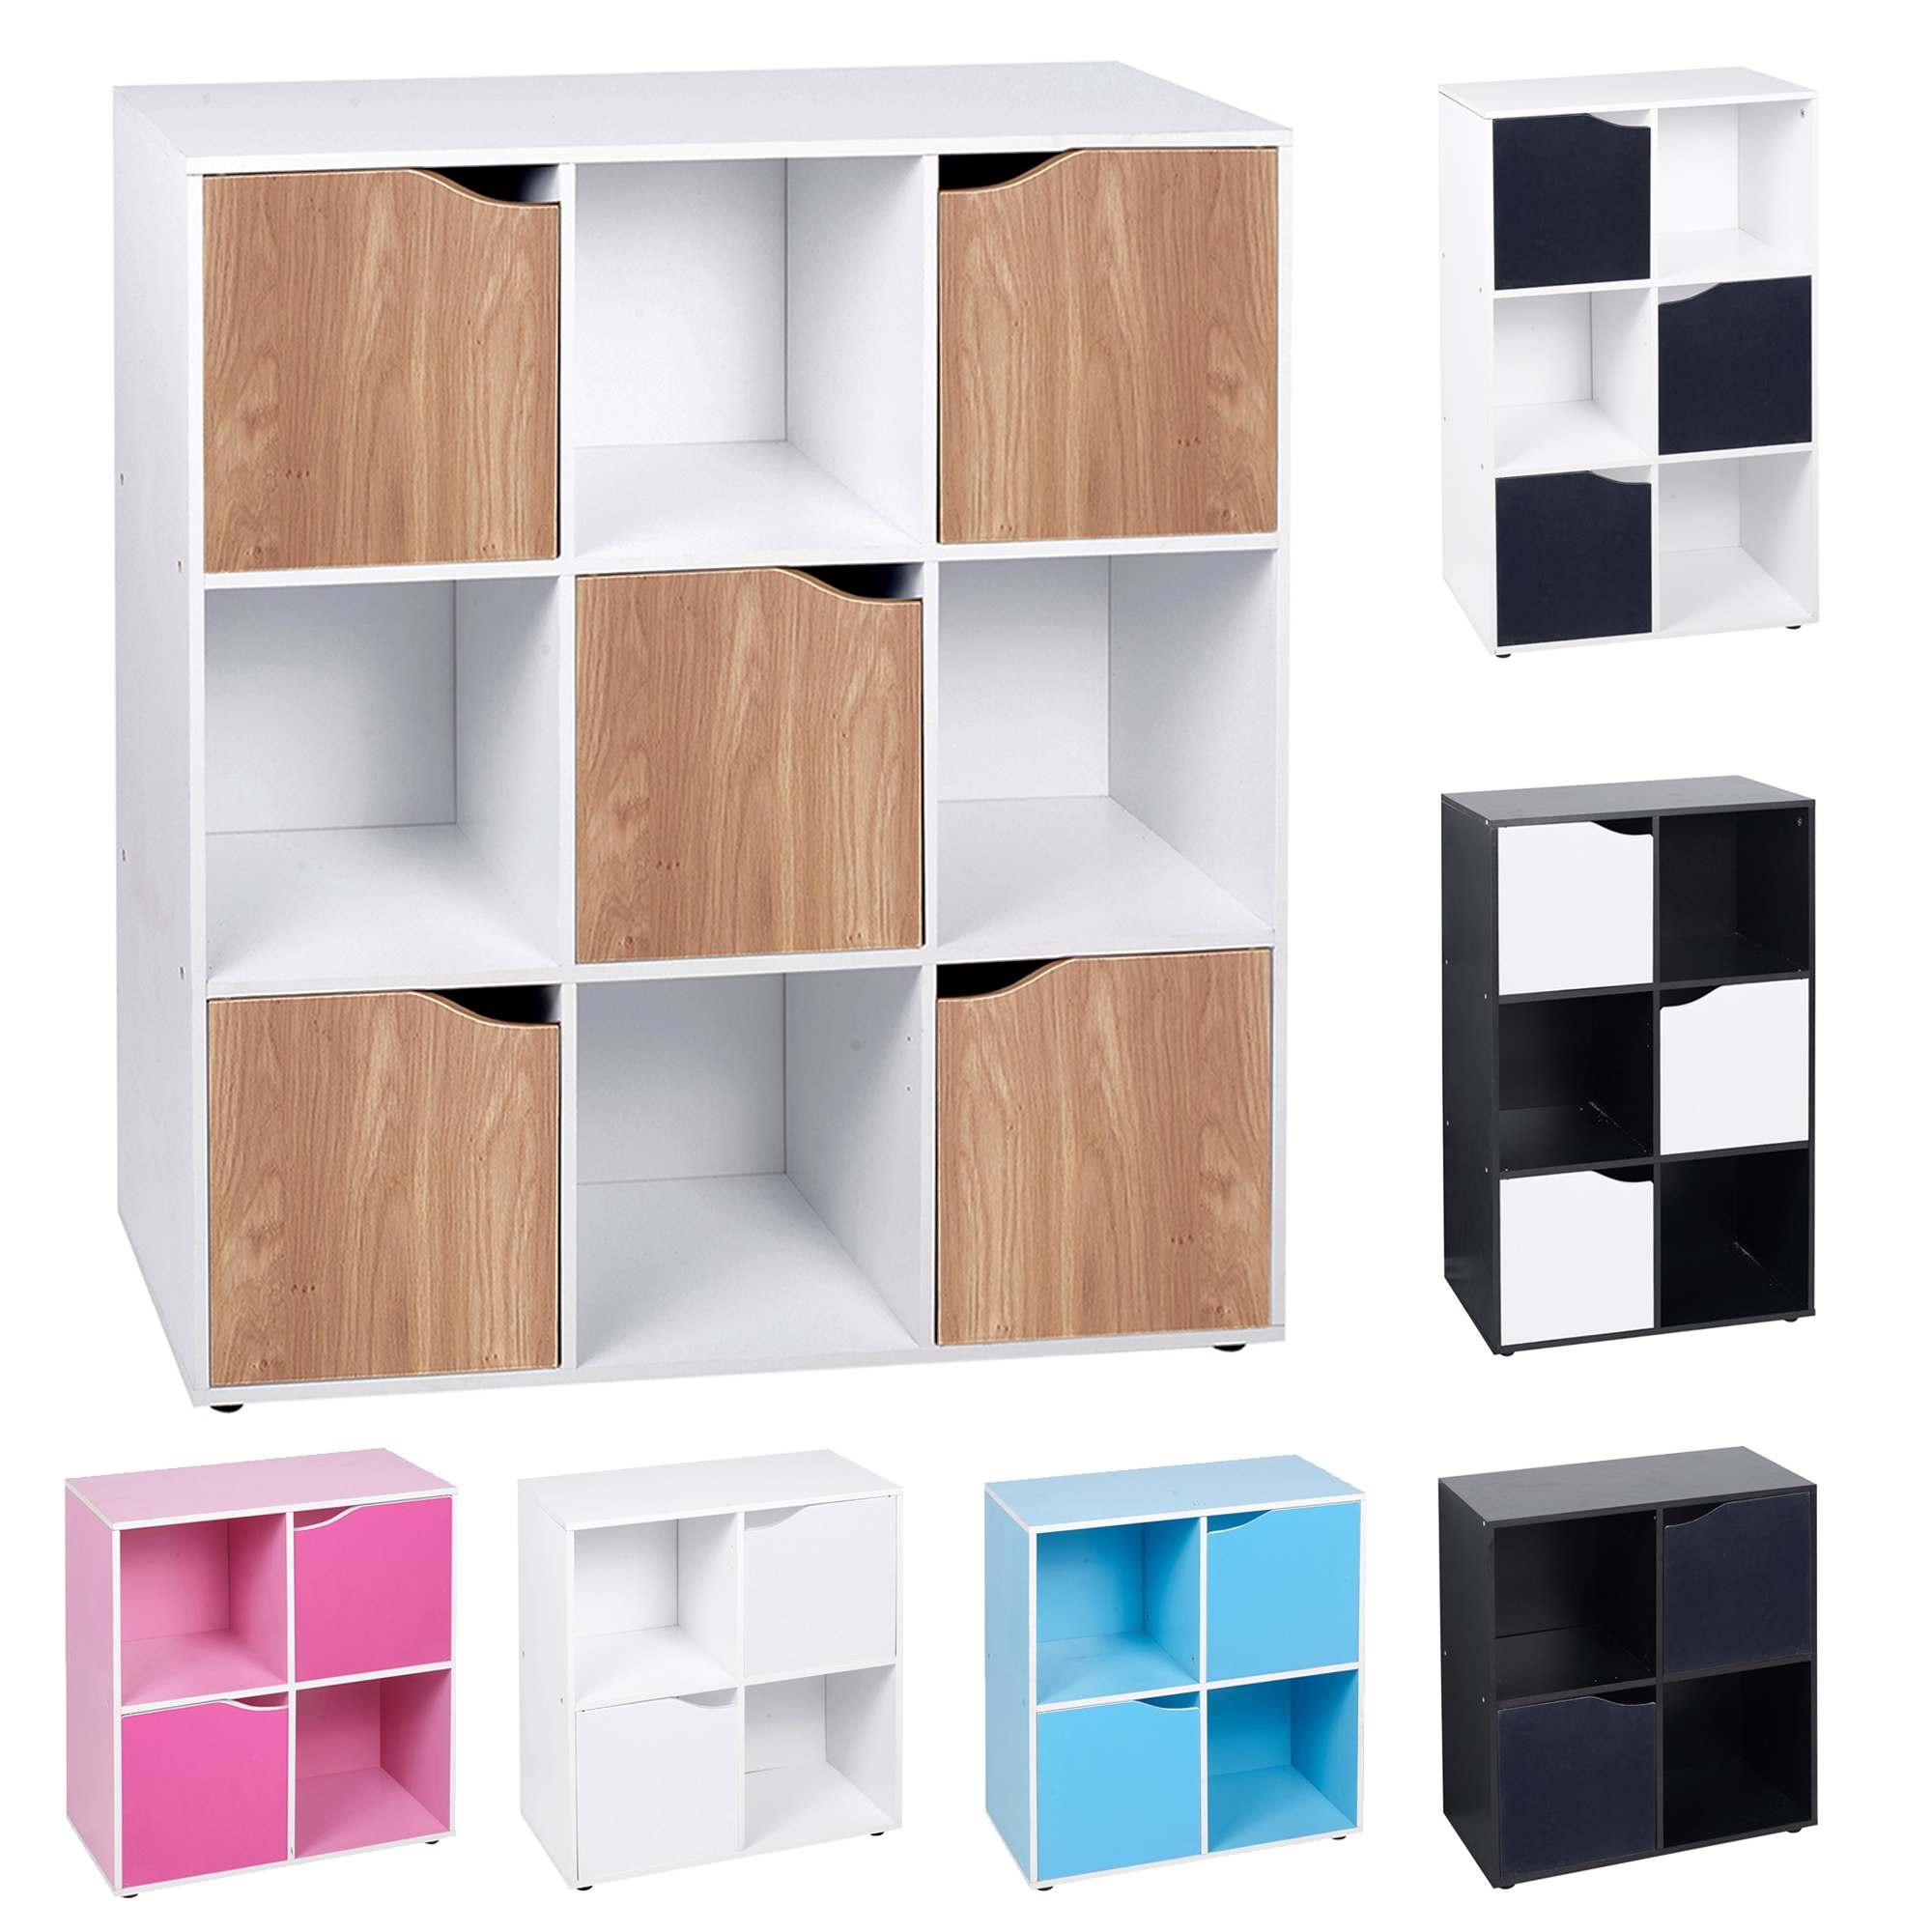 4 6 9 cube wooden bookcase shelving display shelves. Black Bedroom Furniture Sets. Home Design Ideas